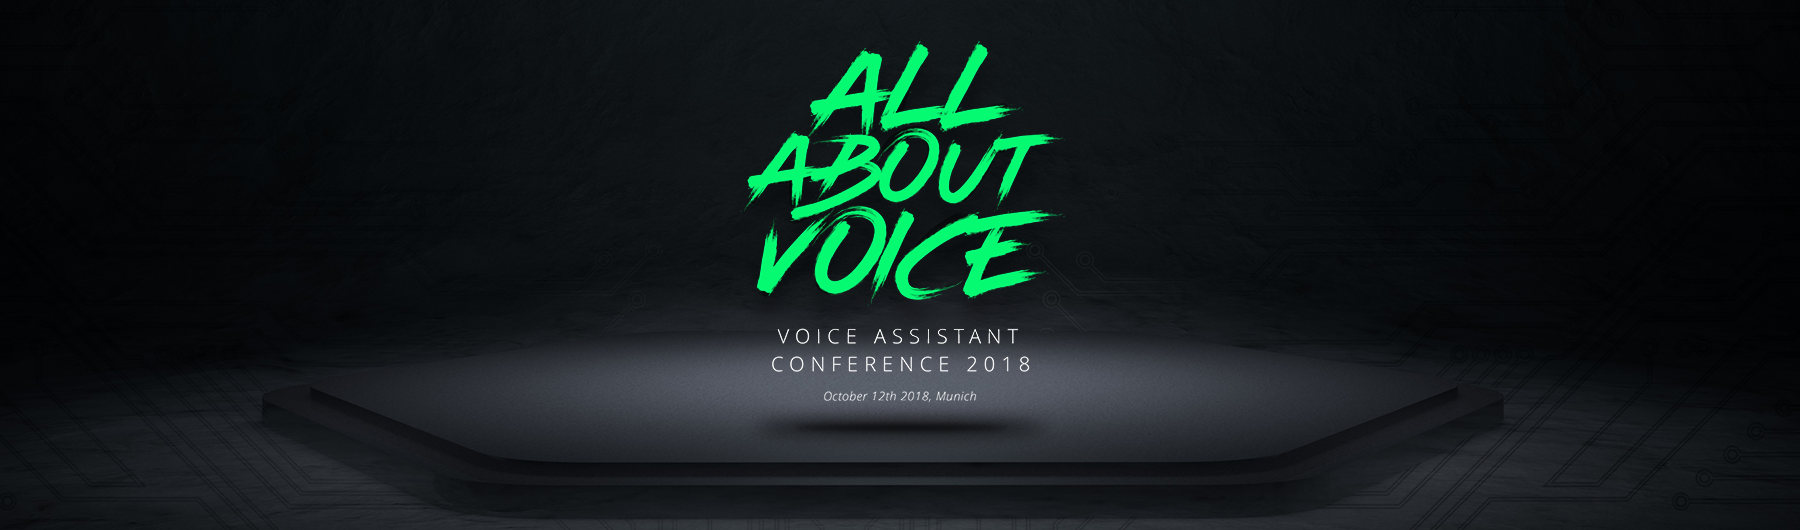 All About Voice Conference 2018